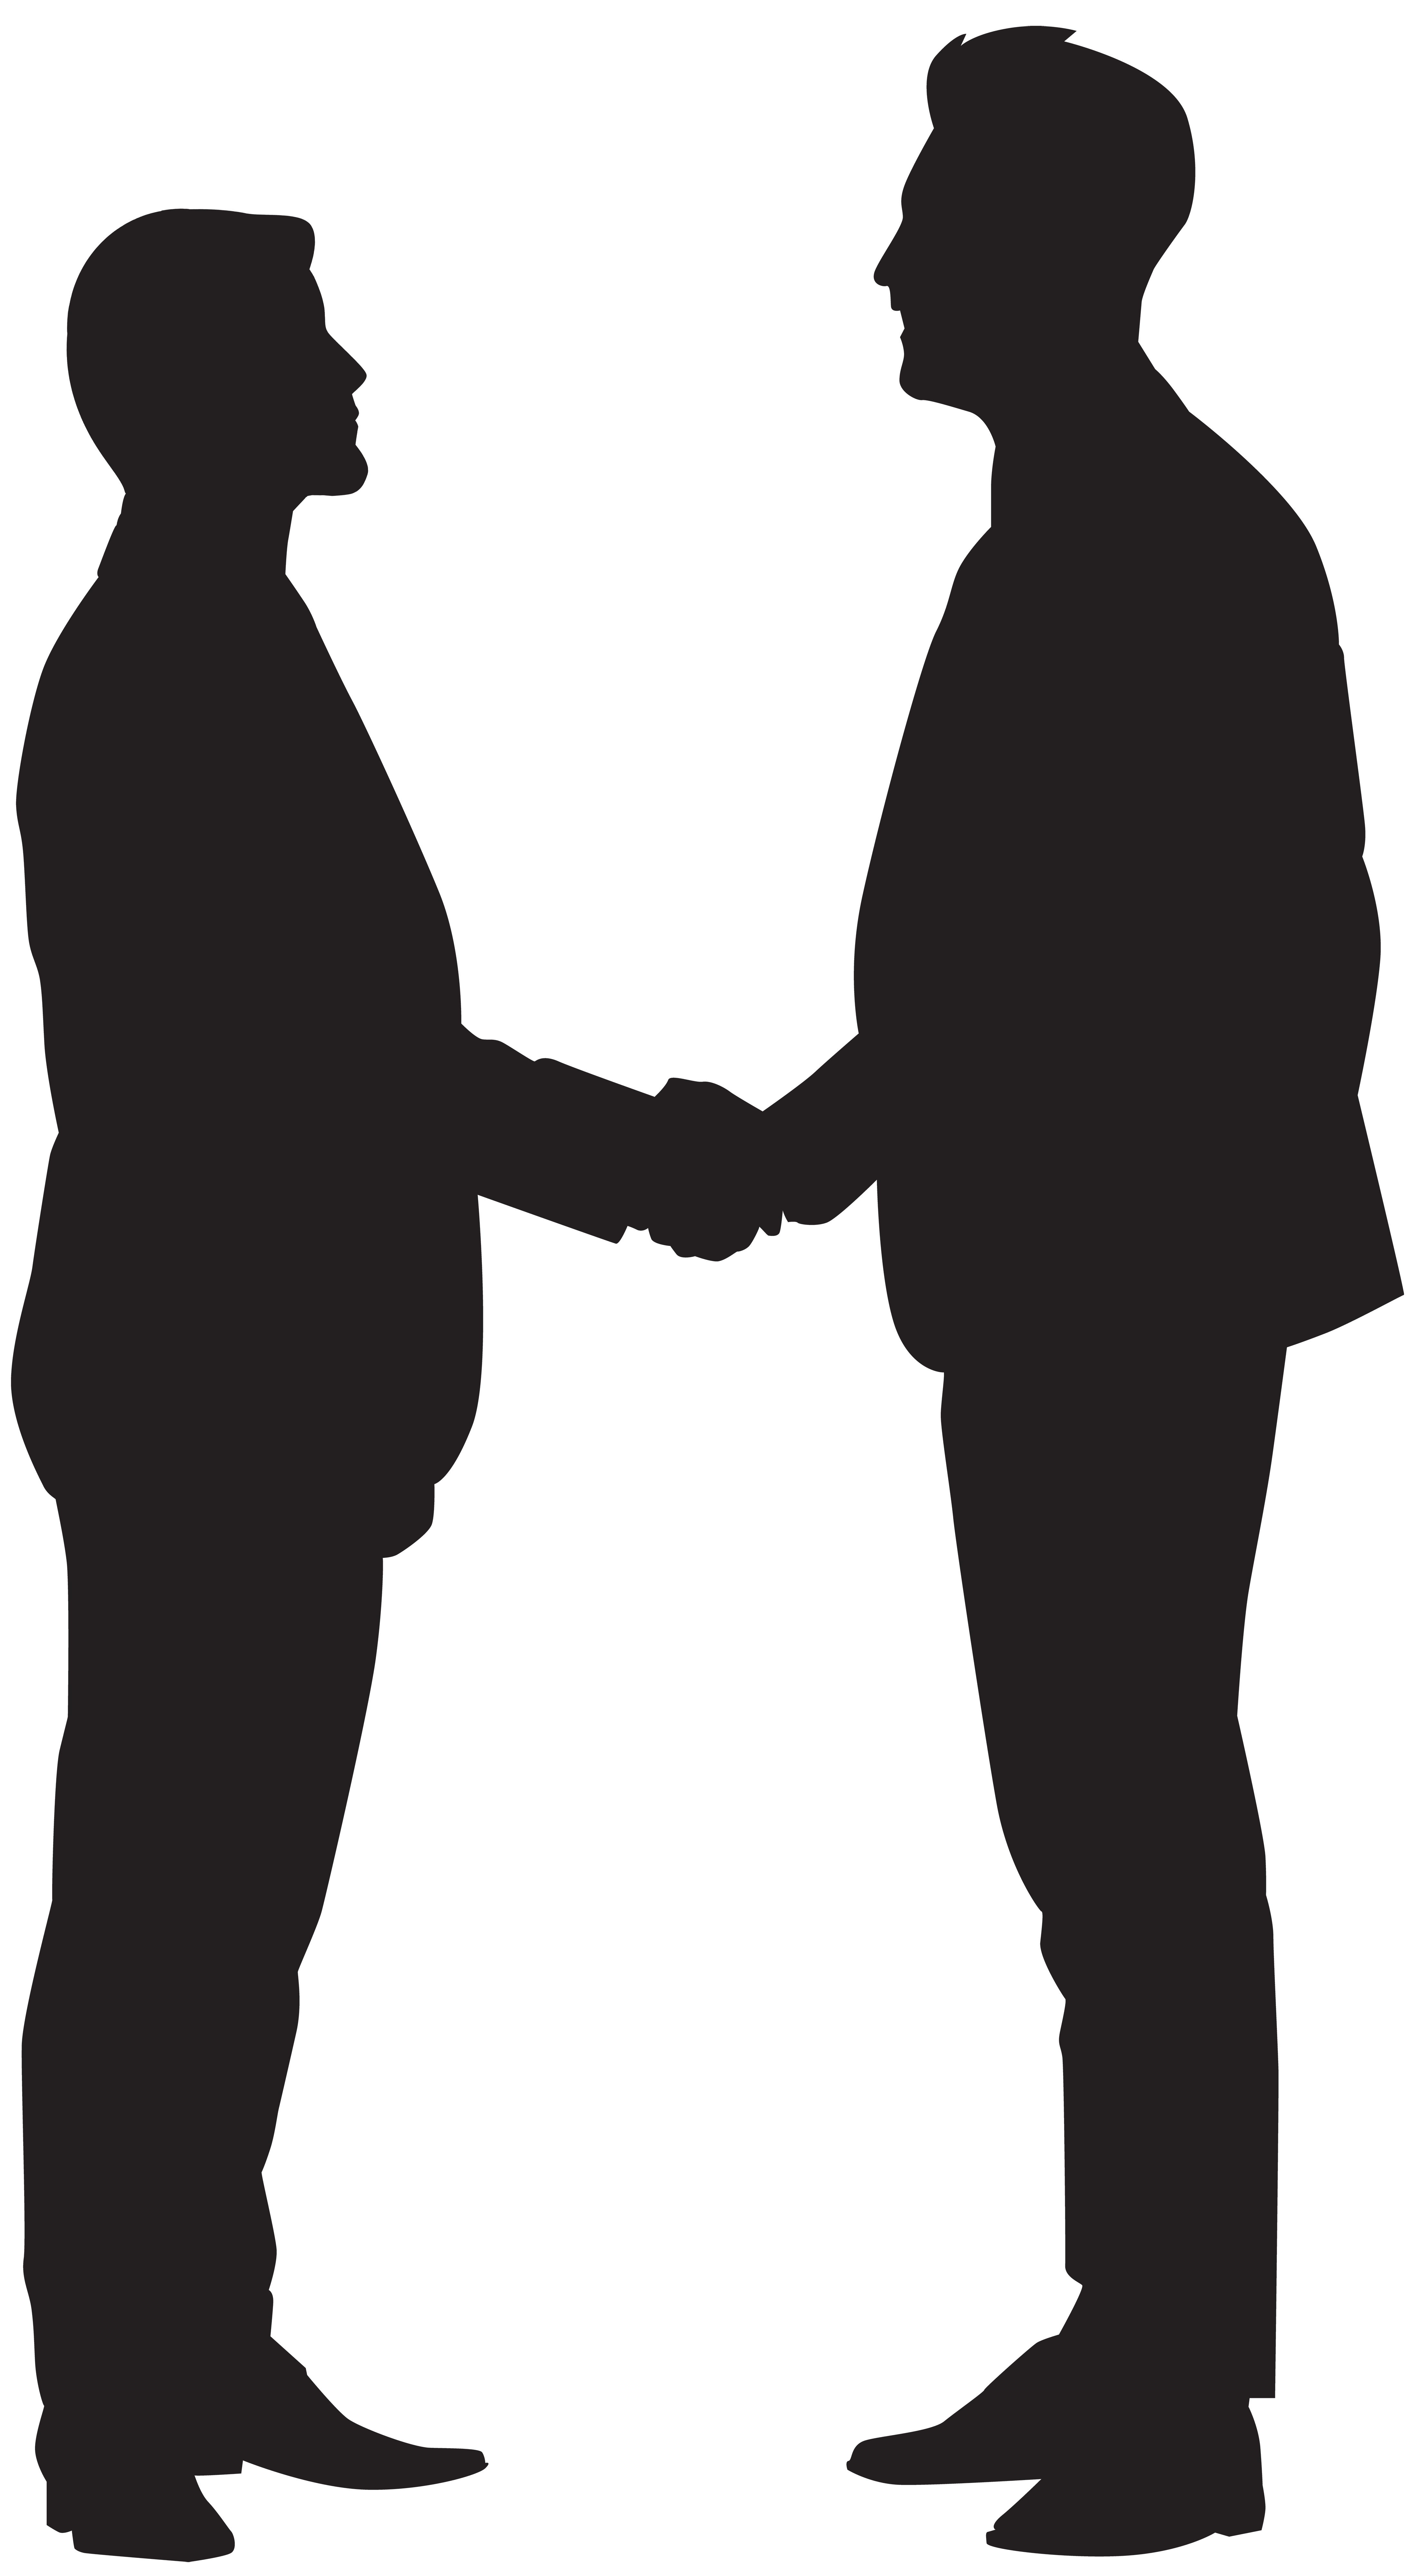 Kids clipart handshake. Men shaking hands silhouette